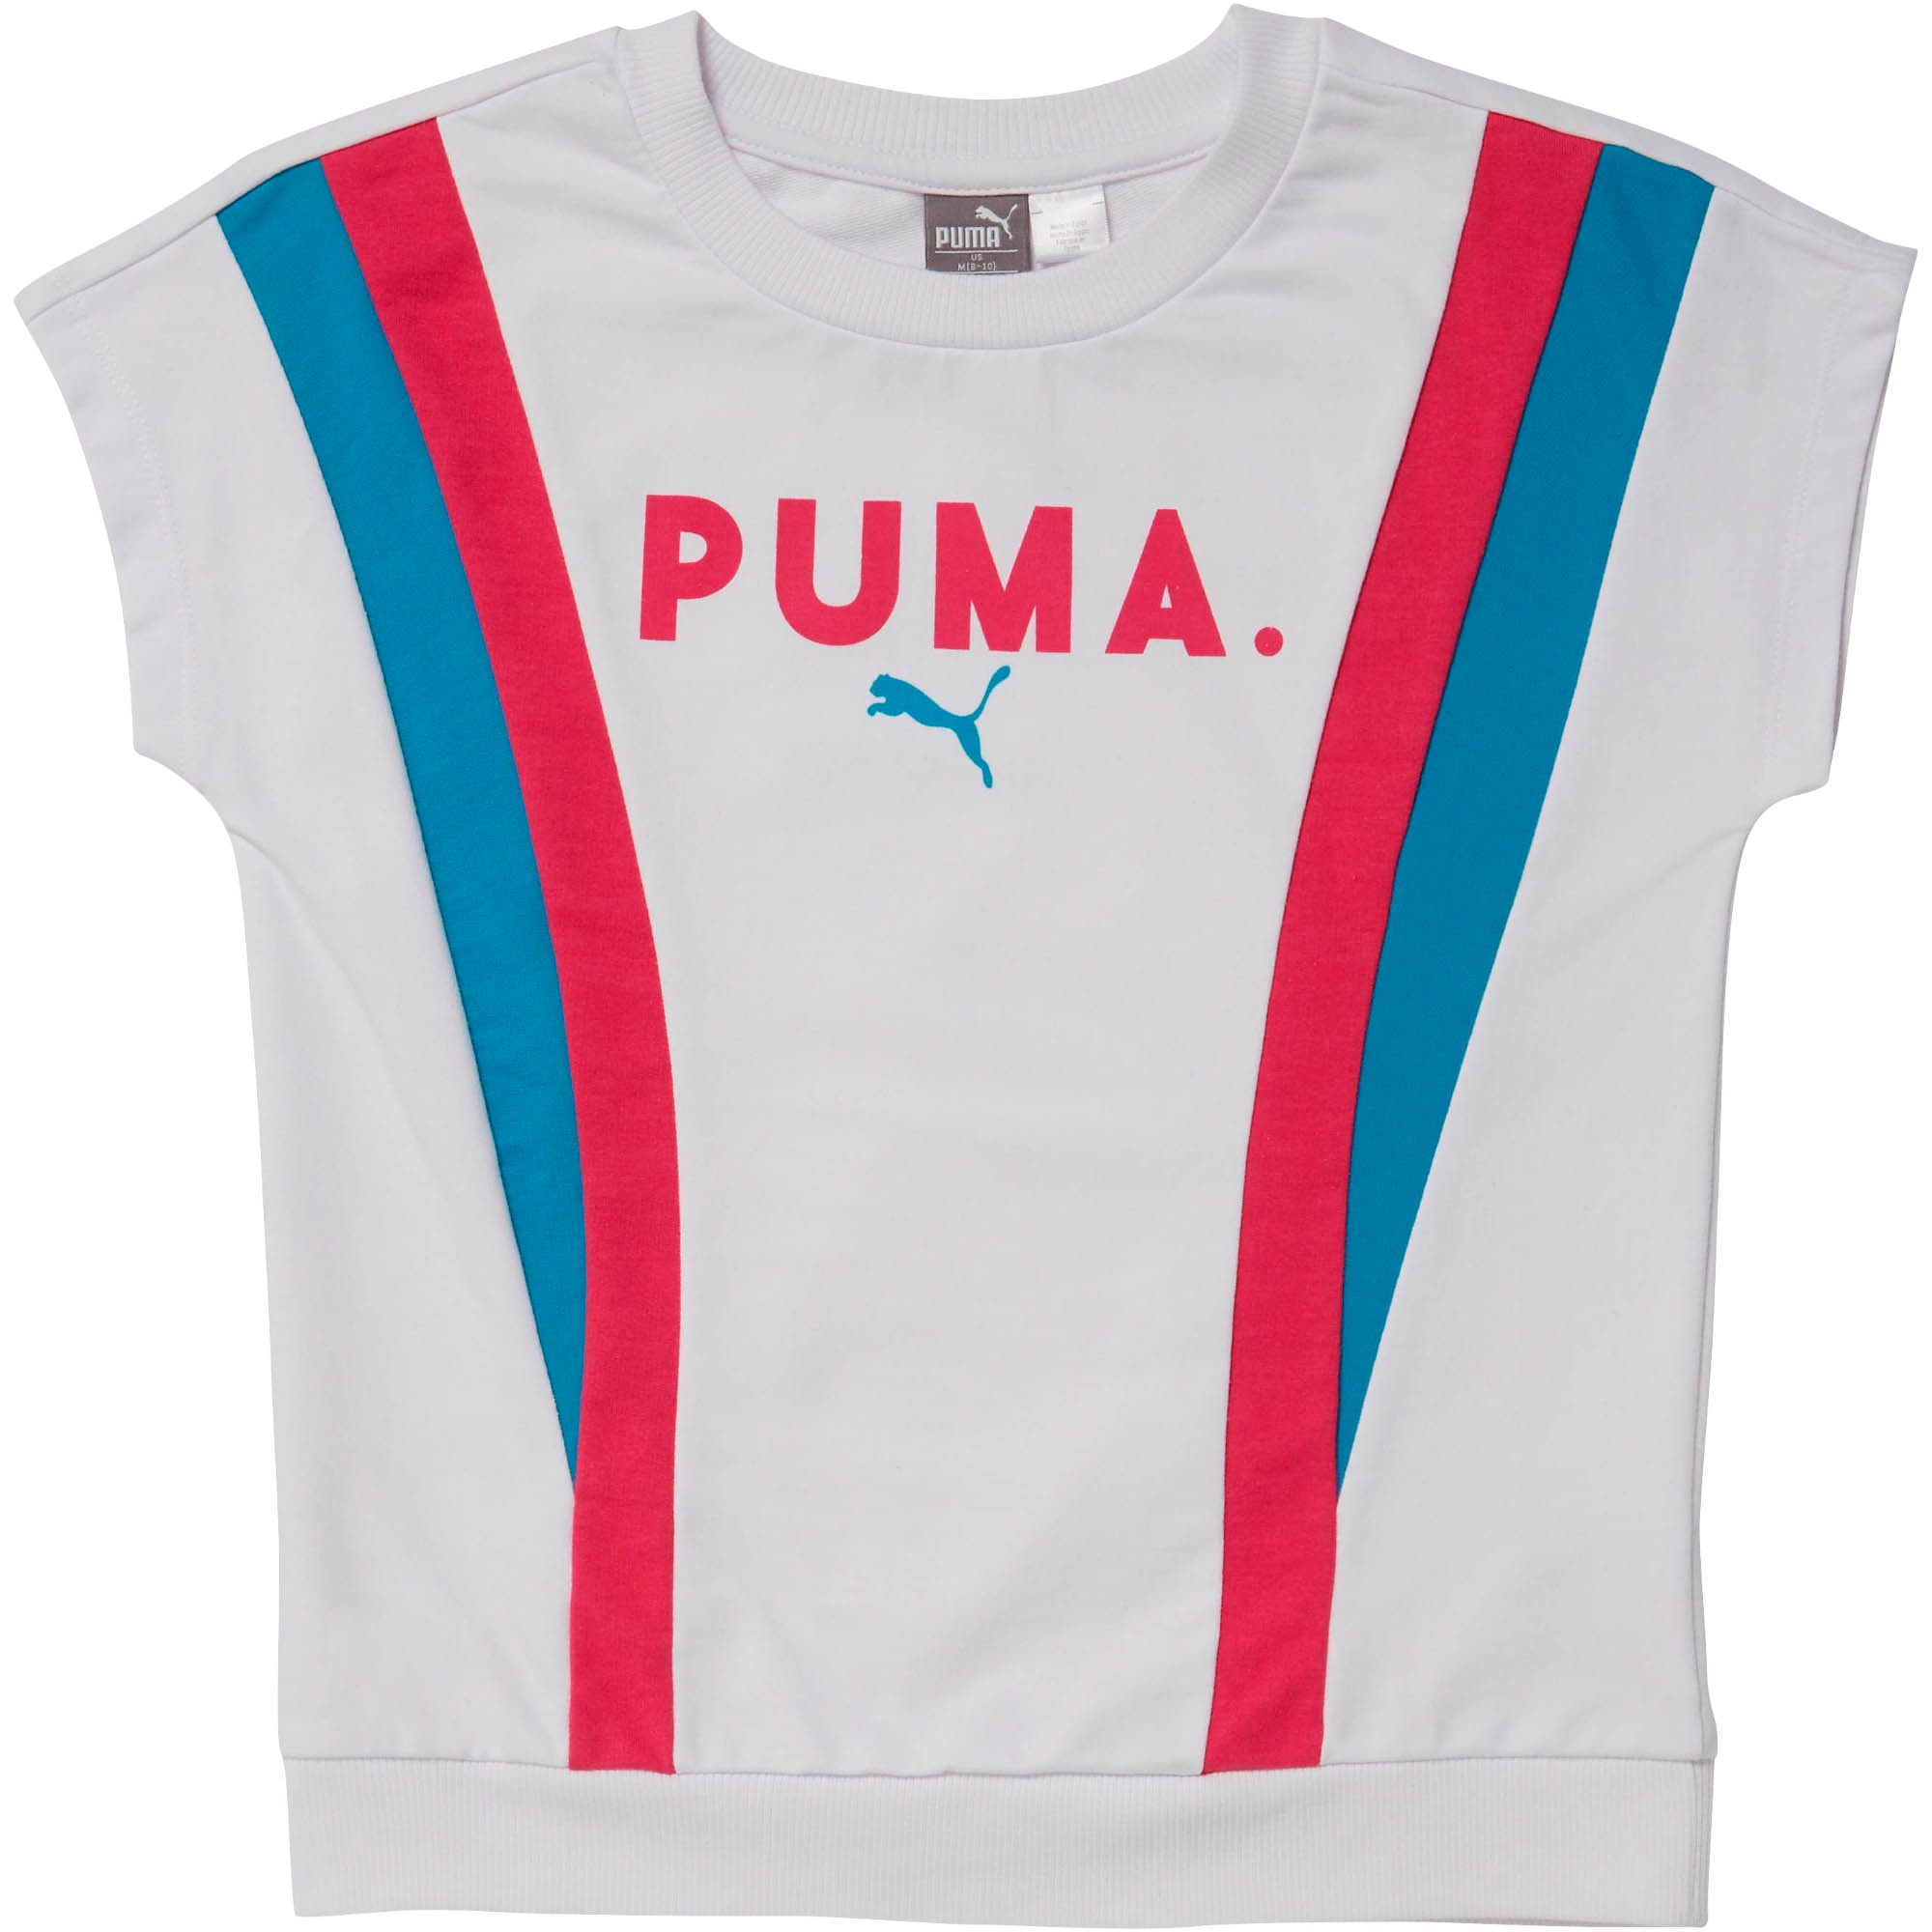 Girls' Colorblock Short Sleeve Pullover JR, PUMA WHITE, large